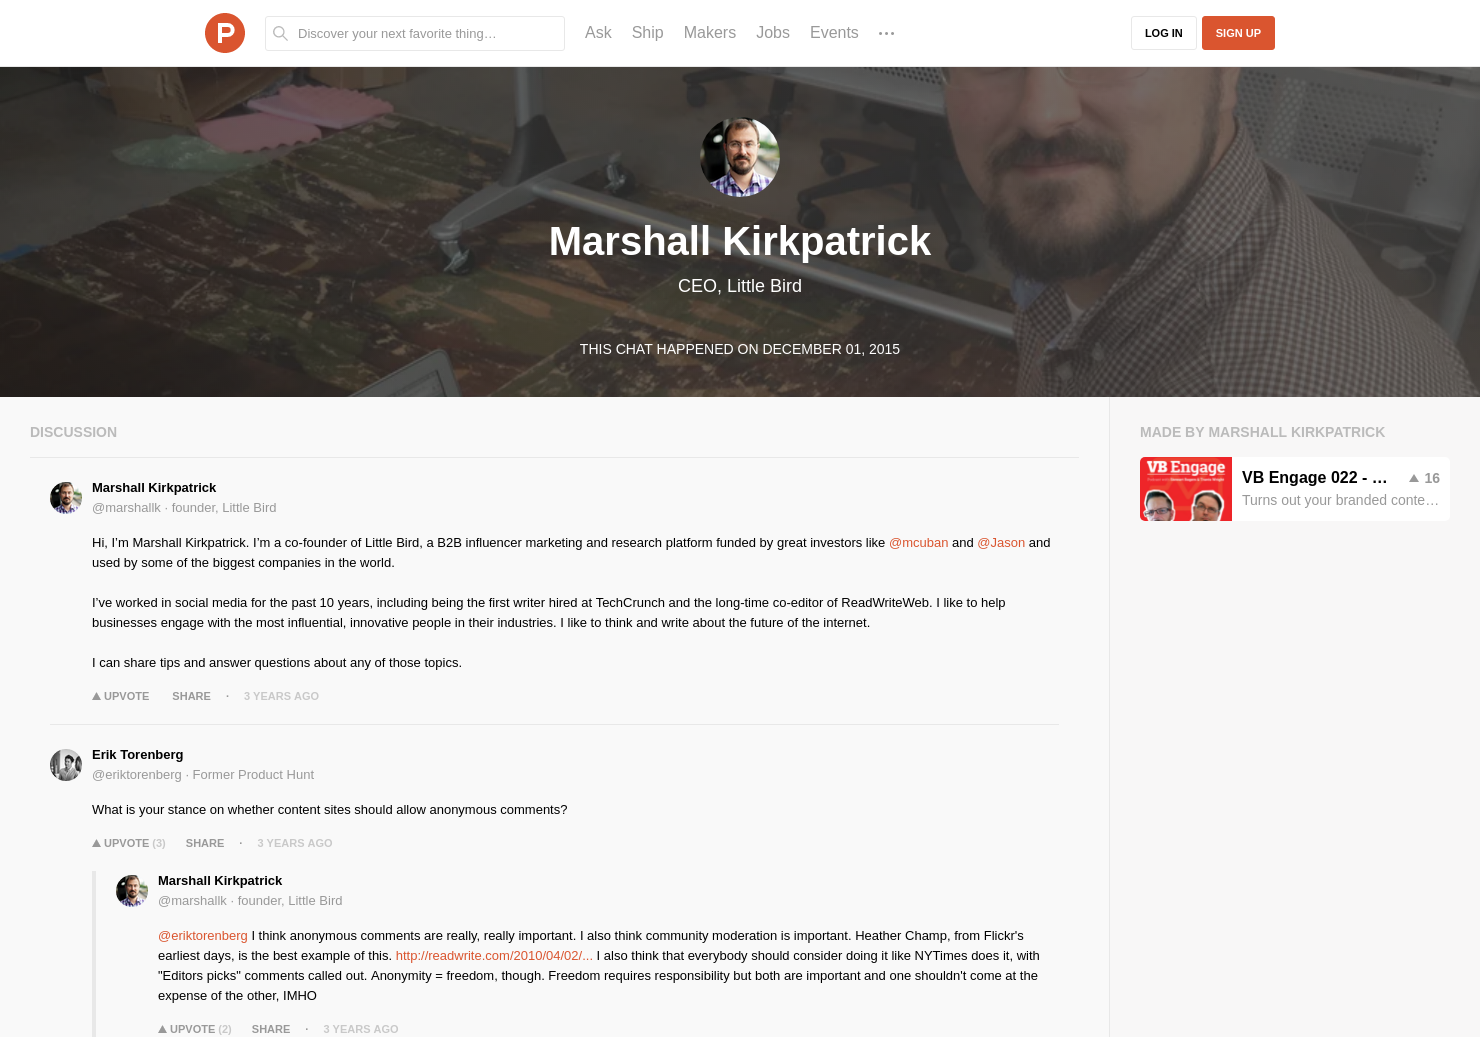 Marshall Kirkpatrick LIVE Chat on Product Hunt